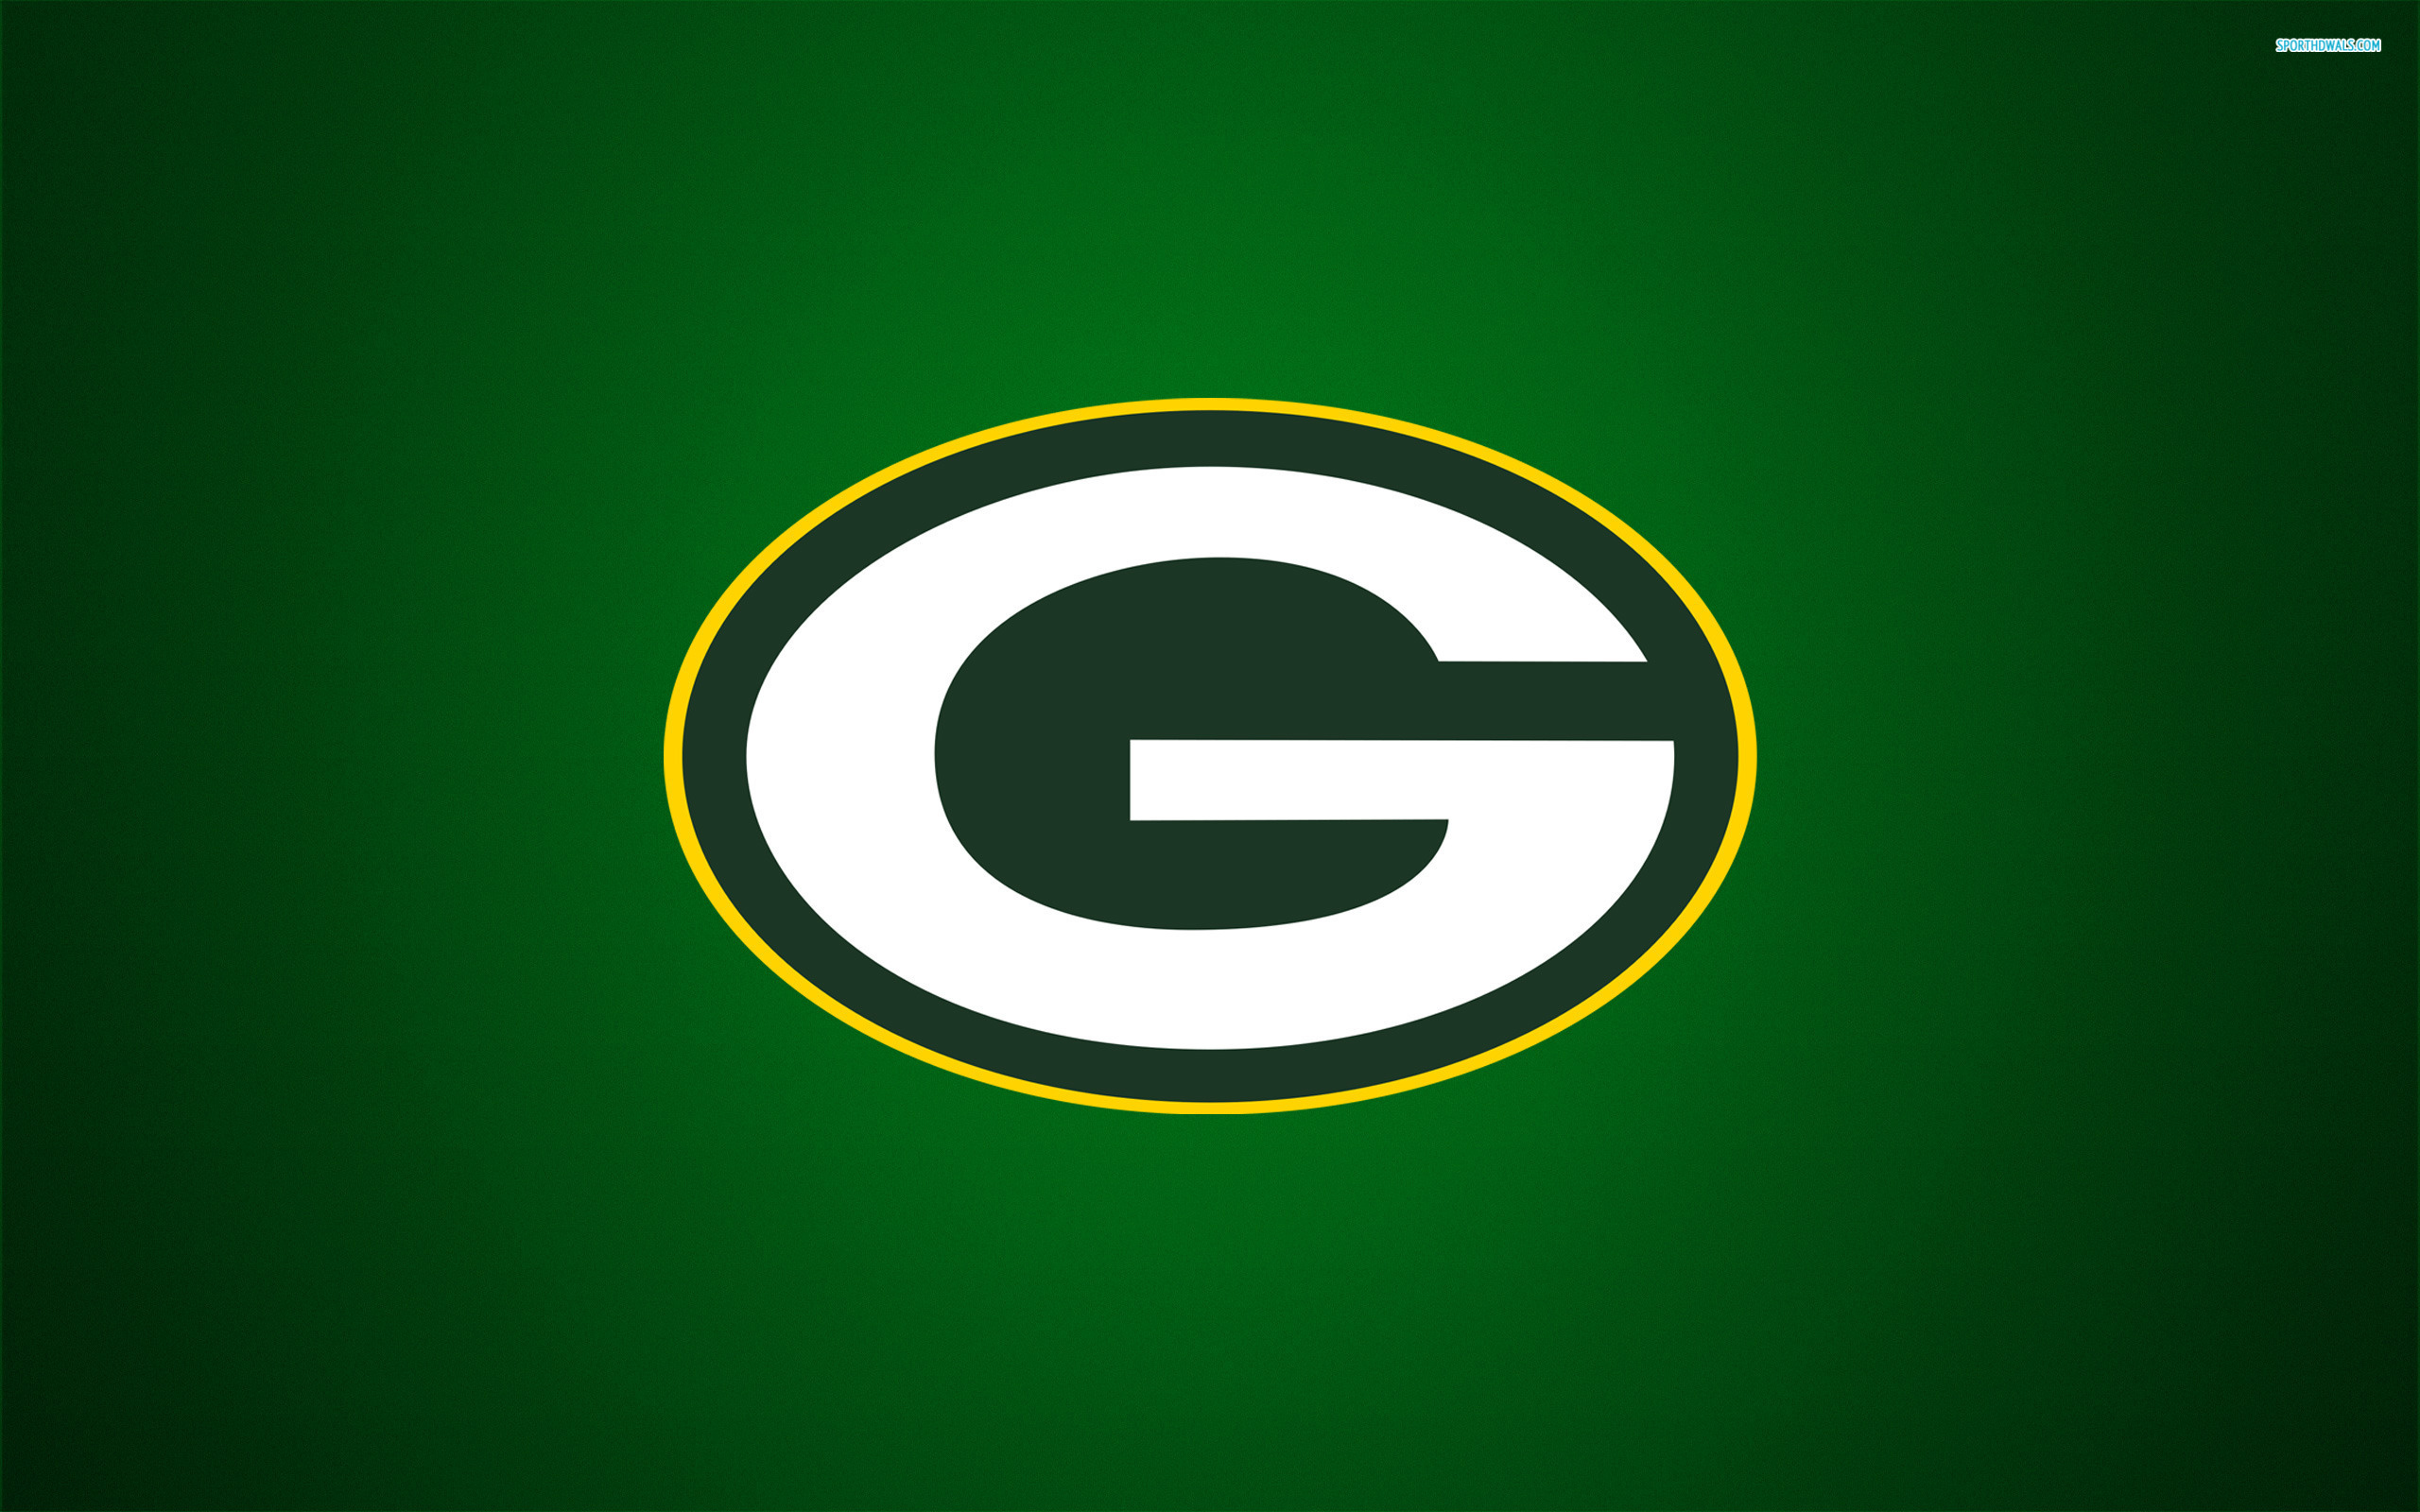 Green Bay Packers wallpaper 2560x1600